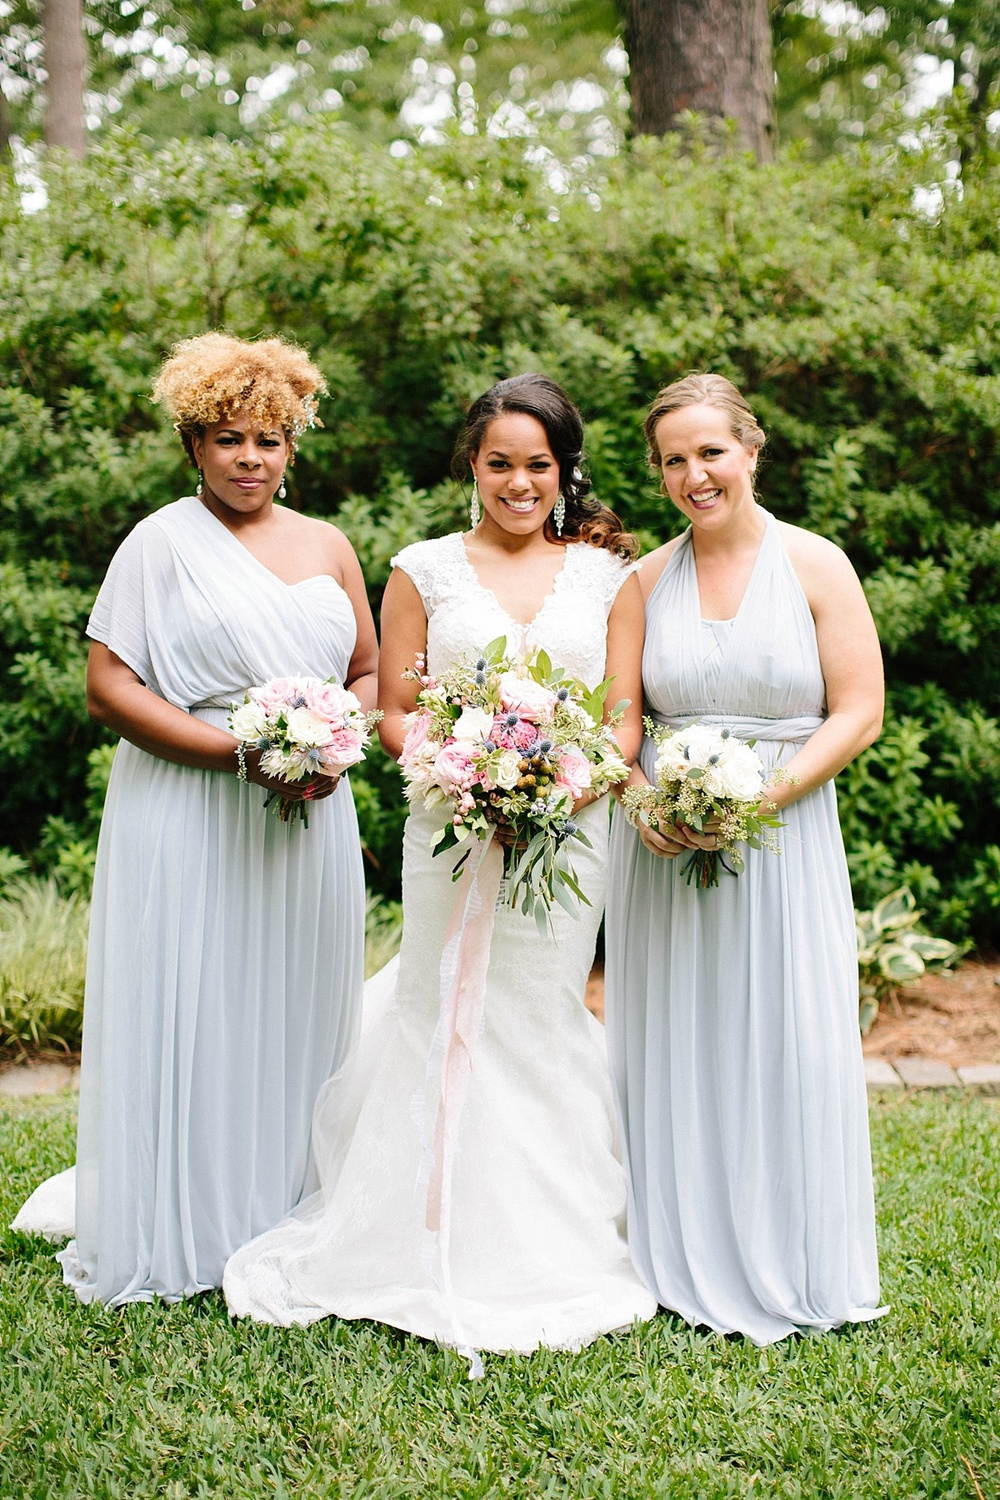 sponsored post david�s bridal � real beauty for real